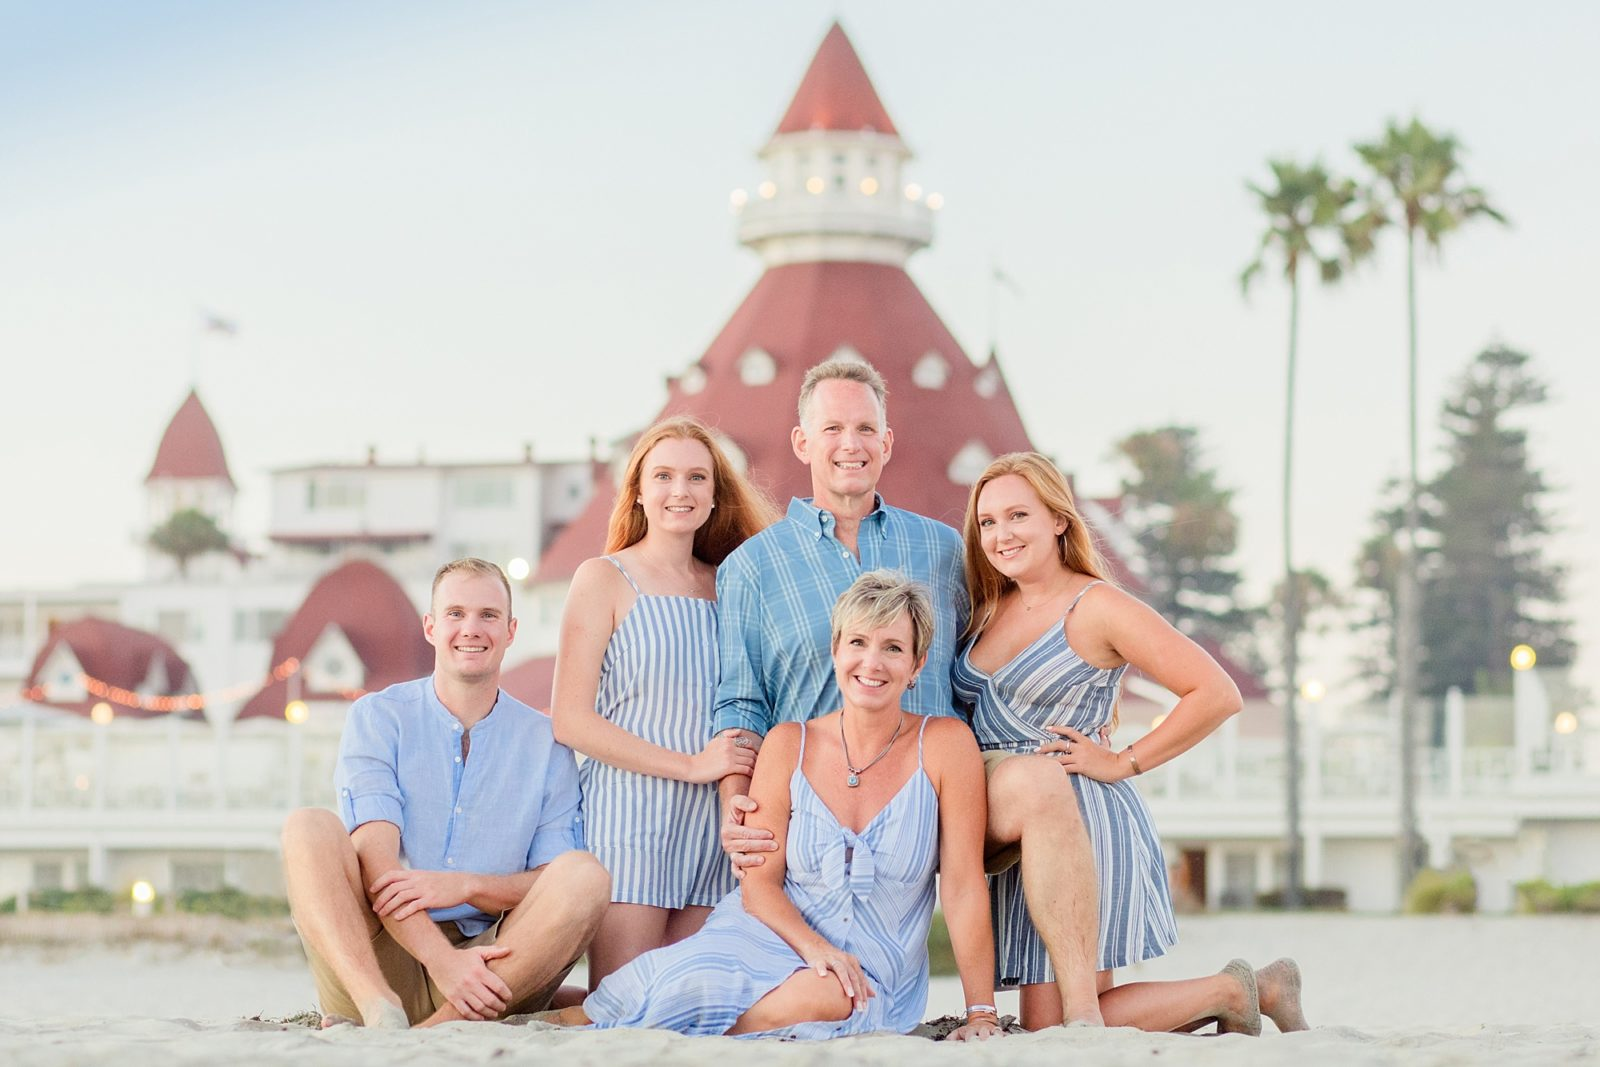 Hotel del Coronado Photographer | Amy Gray Photography